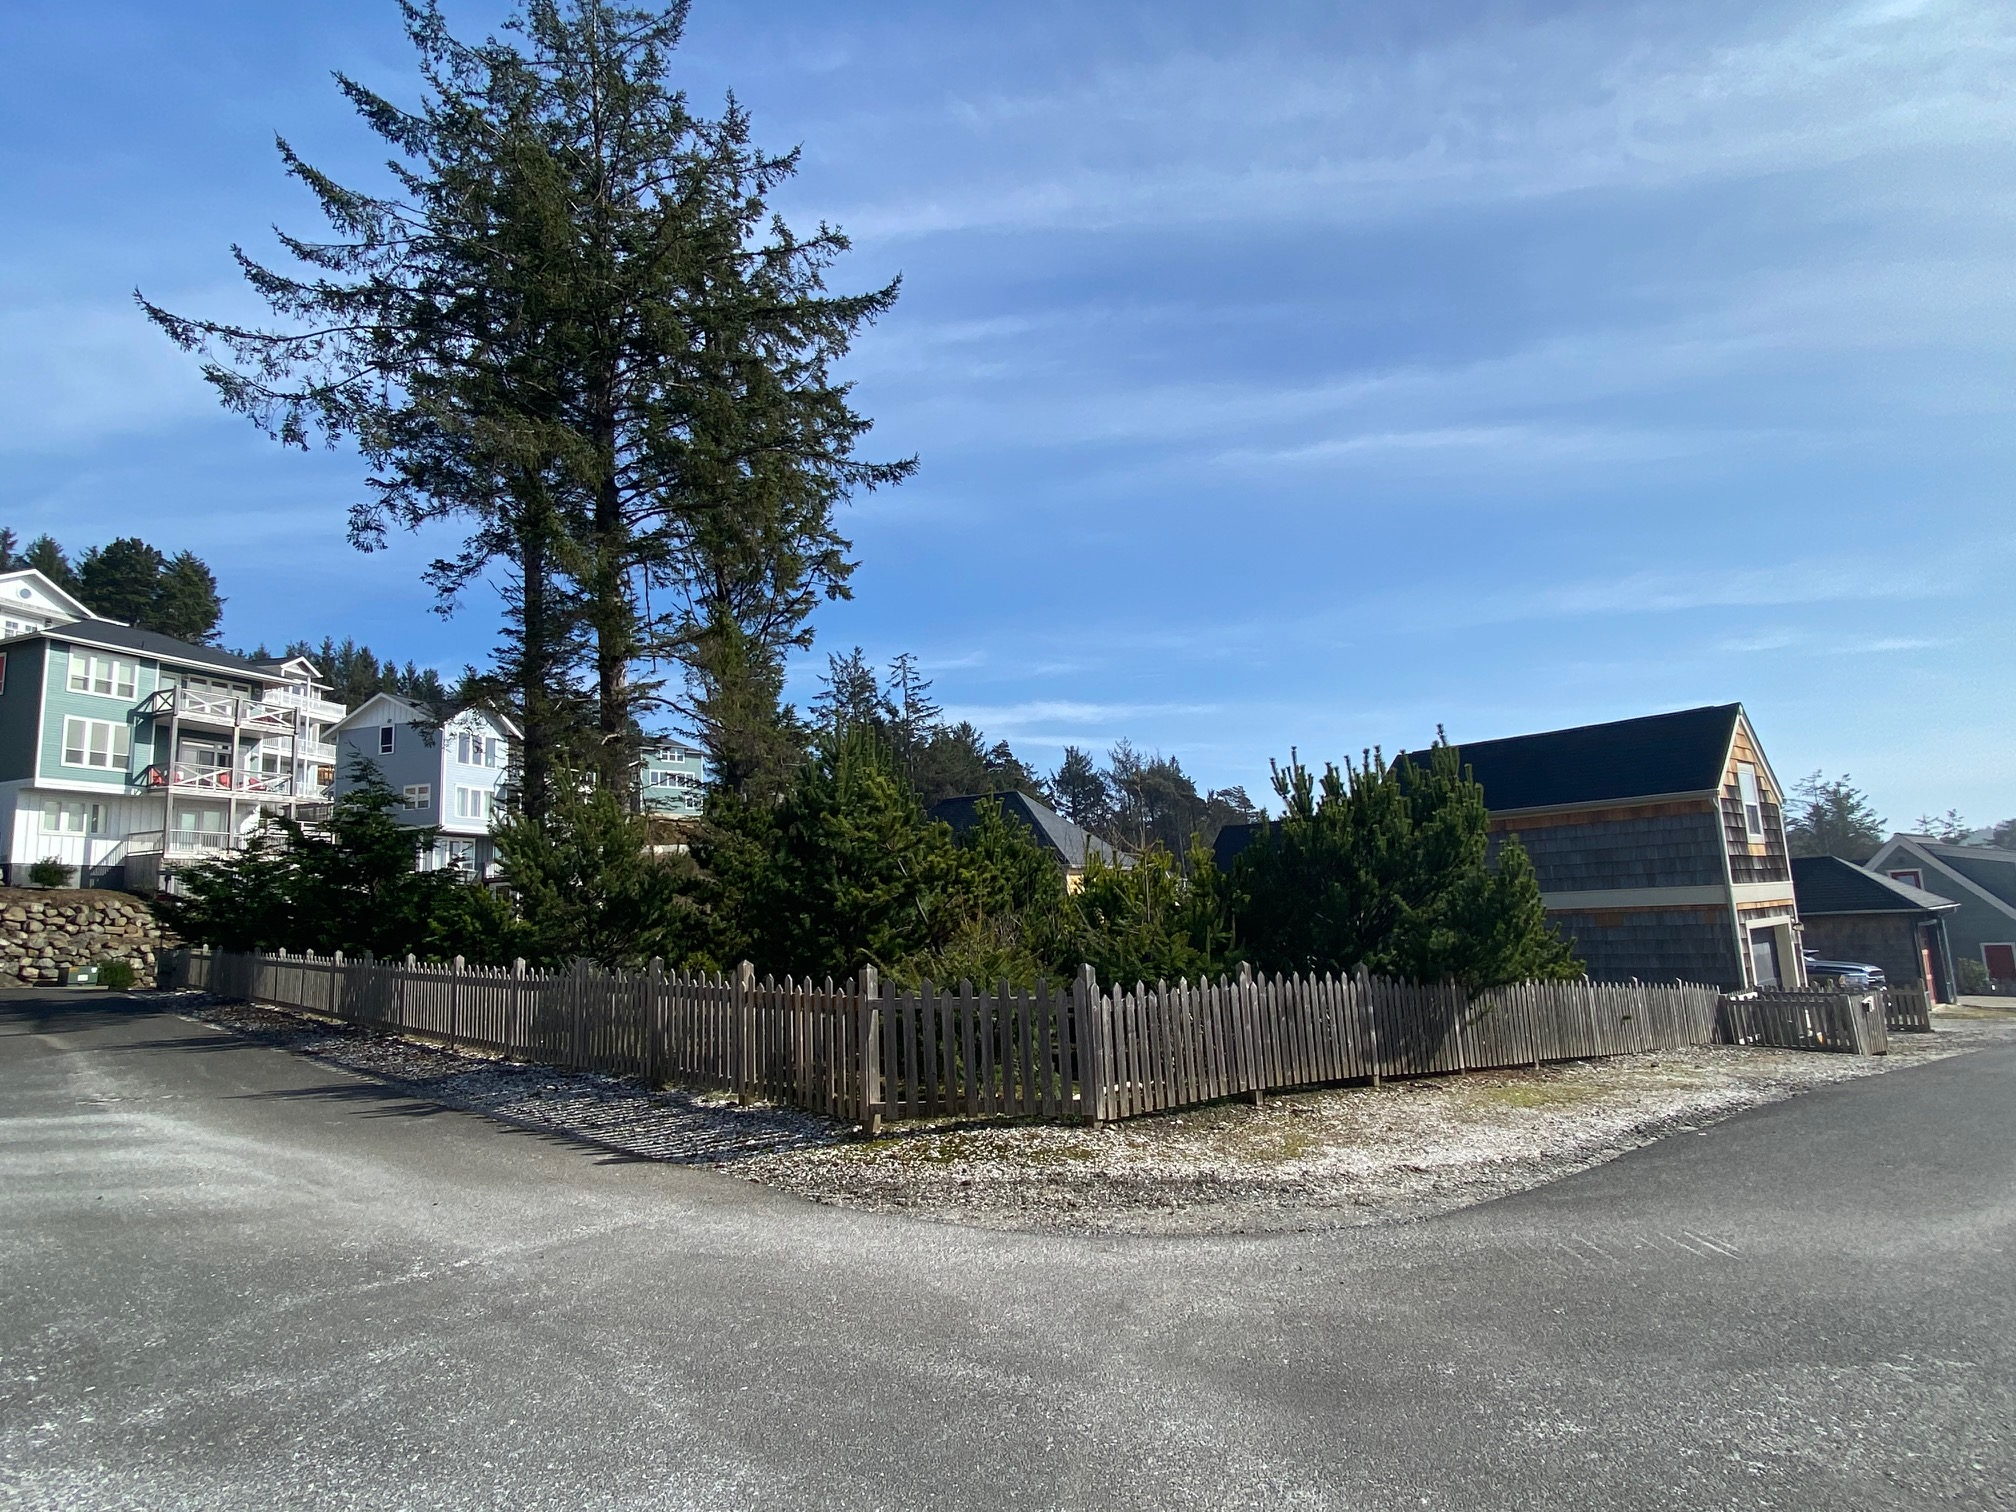 1 - Lot 60 is the fenced in area